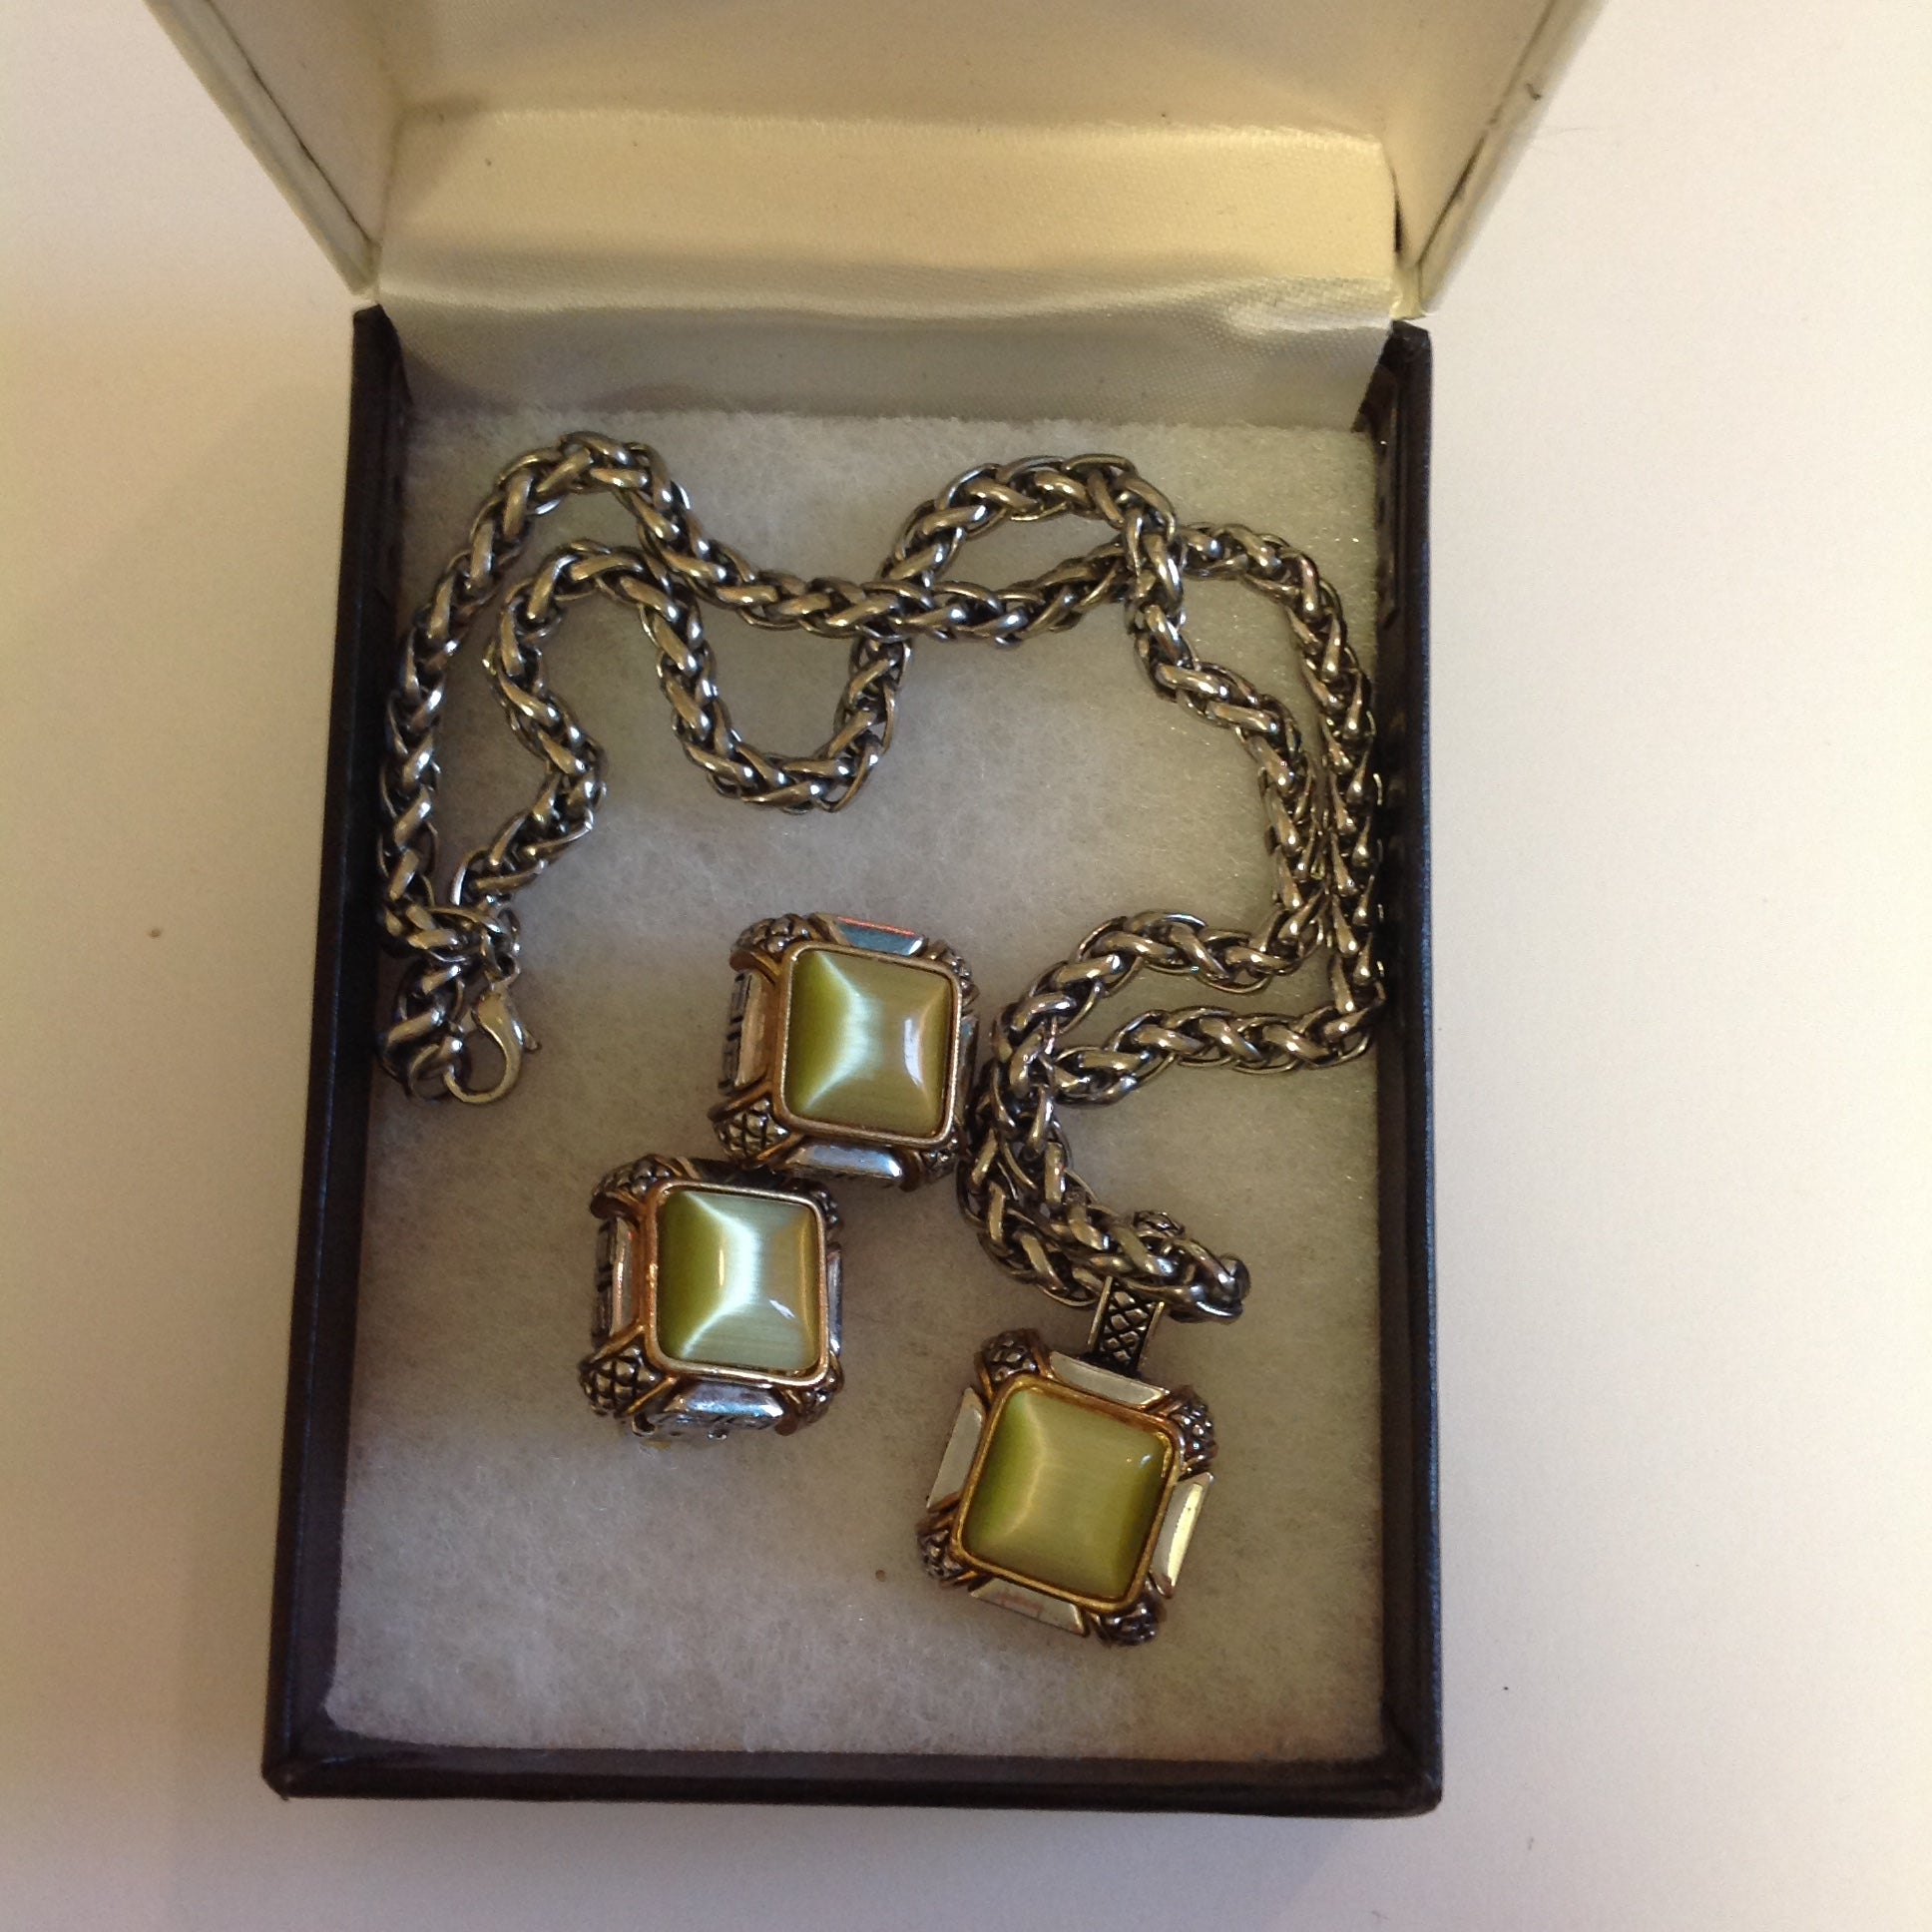 Vintage 1990's Chain Necklace and Clip-On Earrings Set Olive Glass Stone Geometric and Clusters Motif